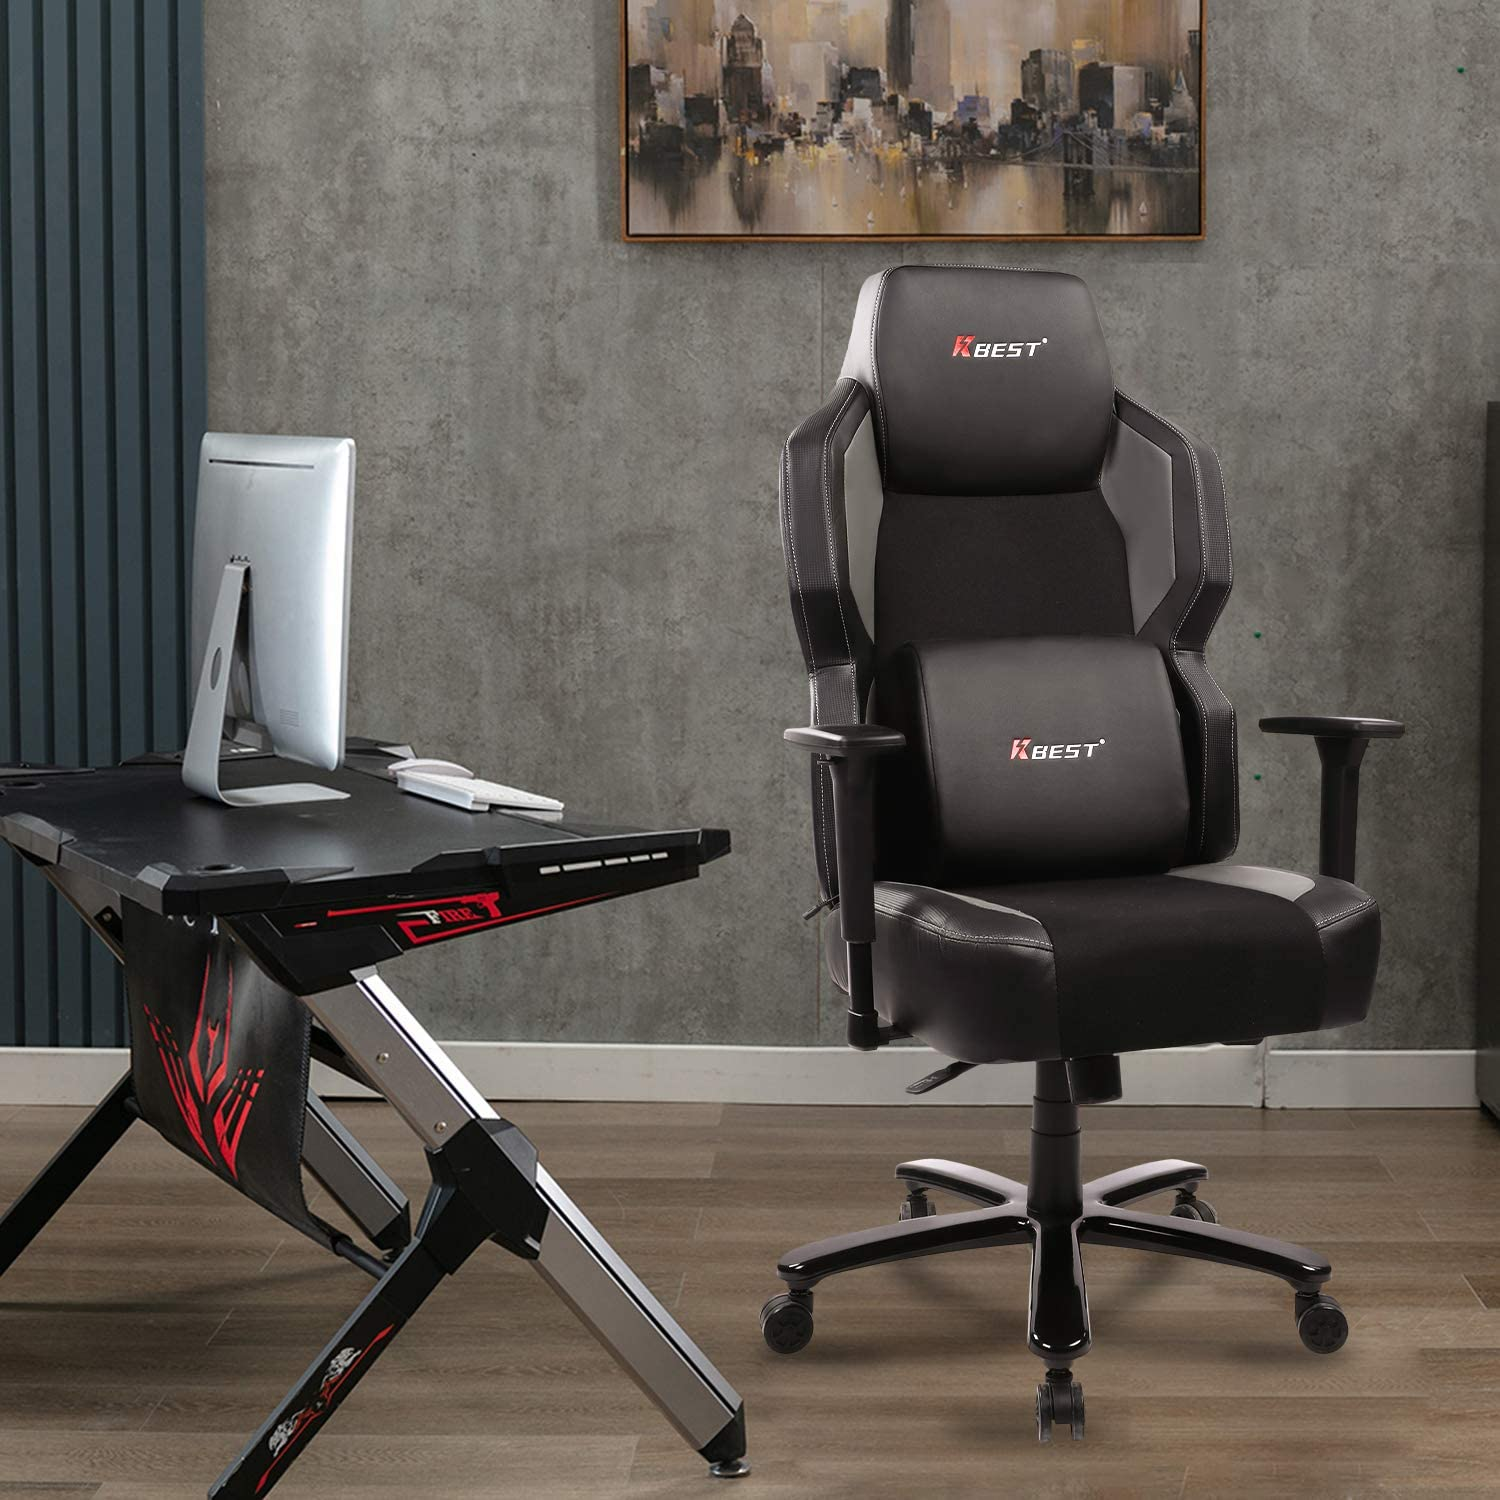 Peroine Big & Tall PU Leather Gaming Chair $144.99 Coupon